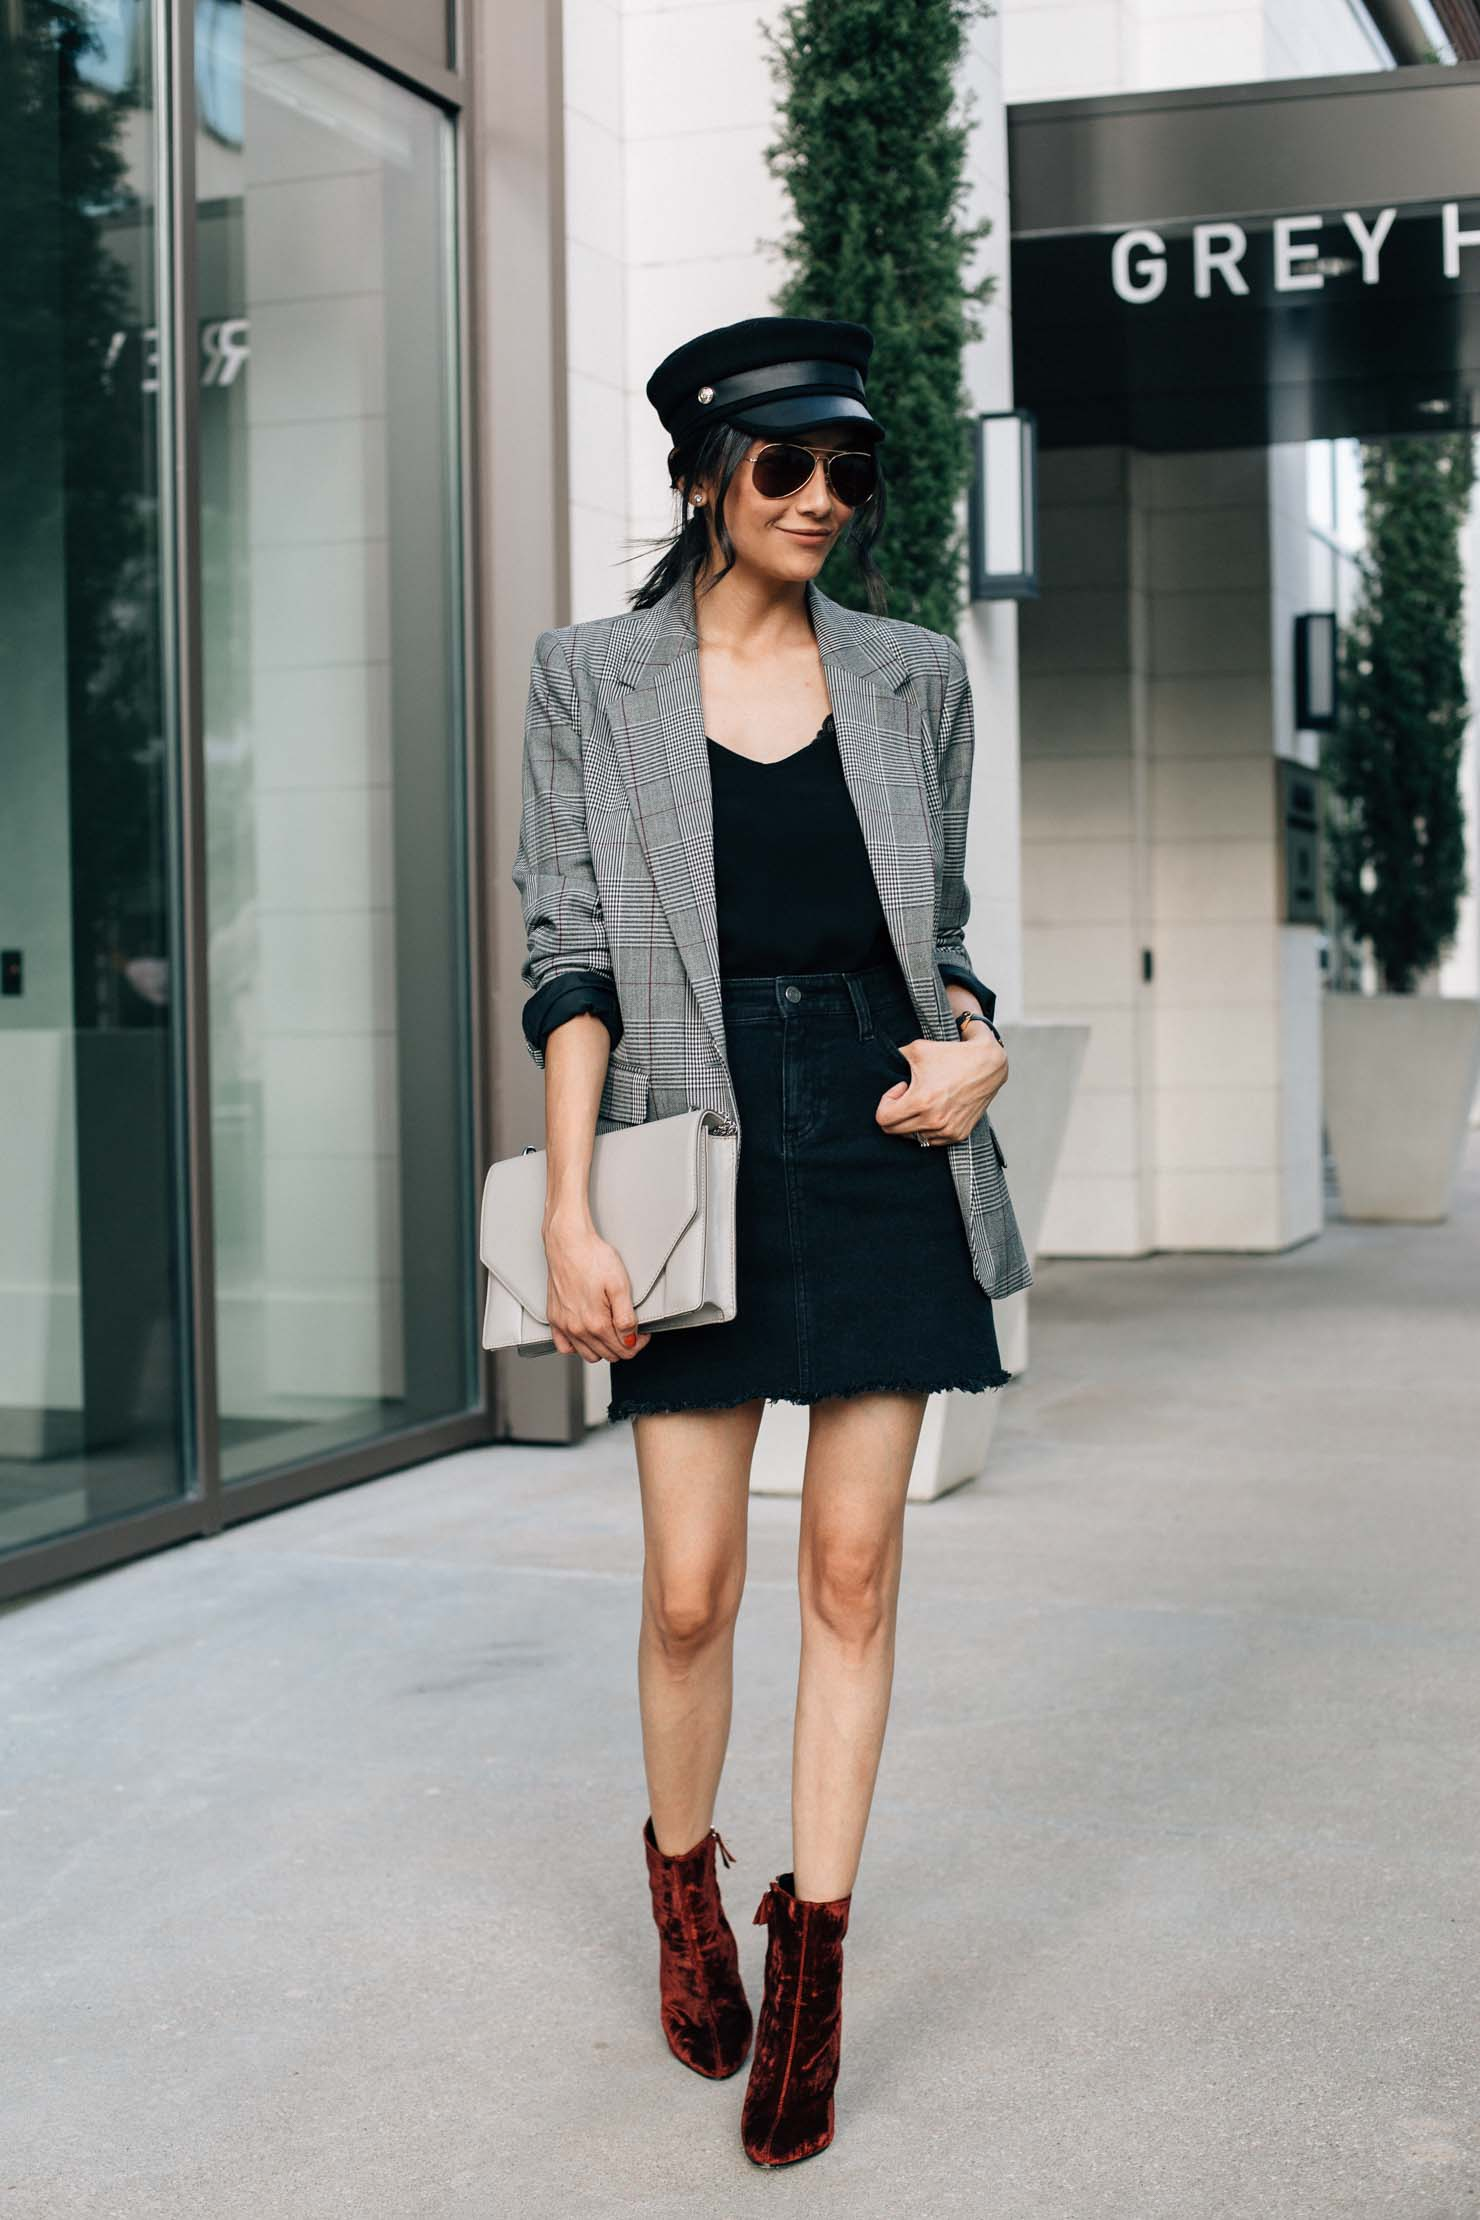 Style blogger Lilly Beltran in a fall look wearing a baker boy hat, plaid blazer and velvet ankle boots